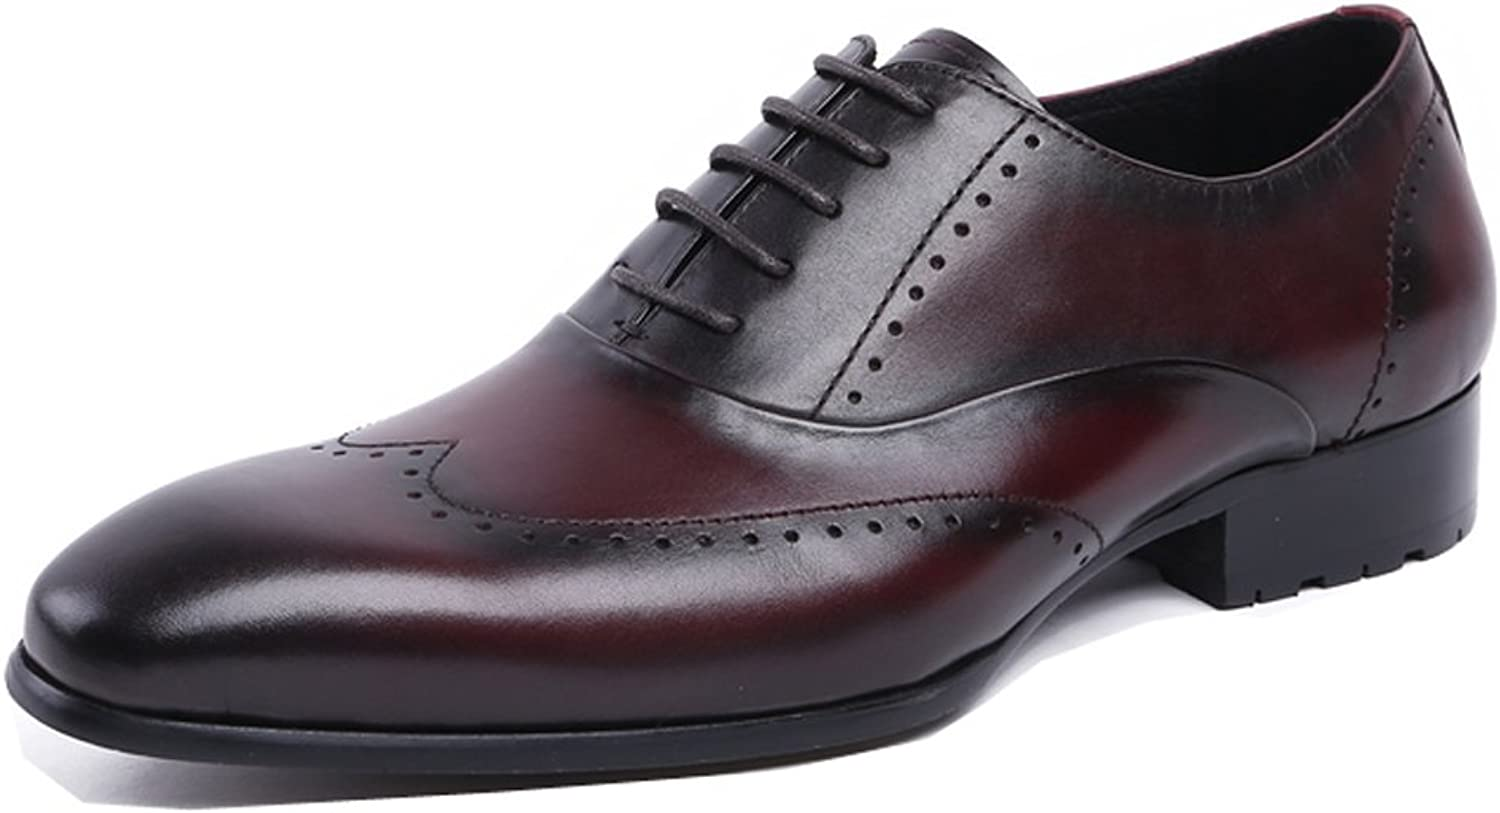 Dilize Men's Classic Pointed Toe Leather Wedding Party Brogue shoes